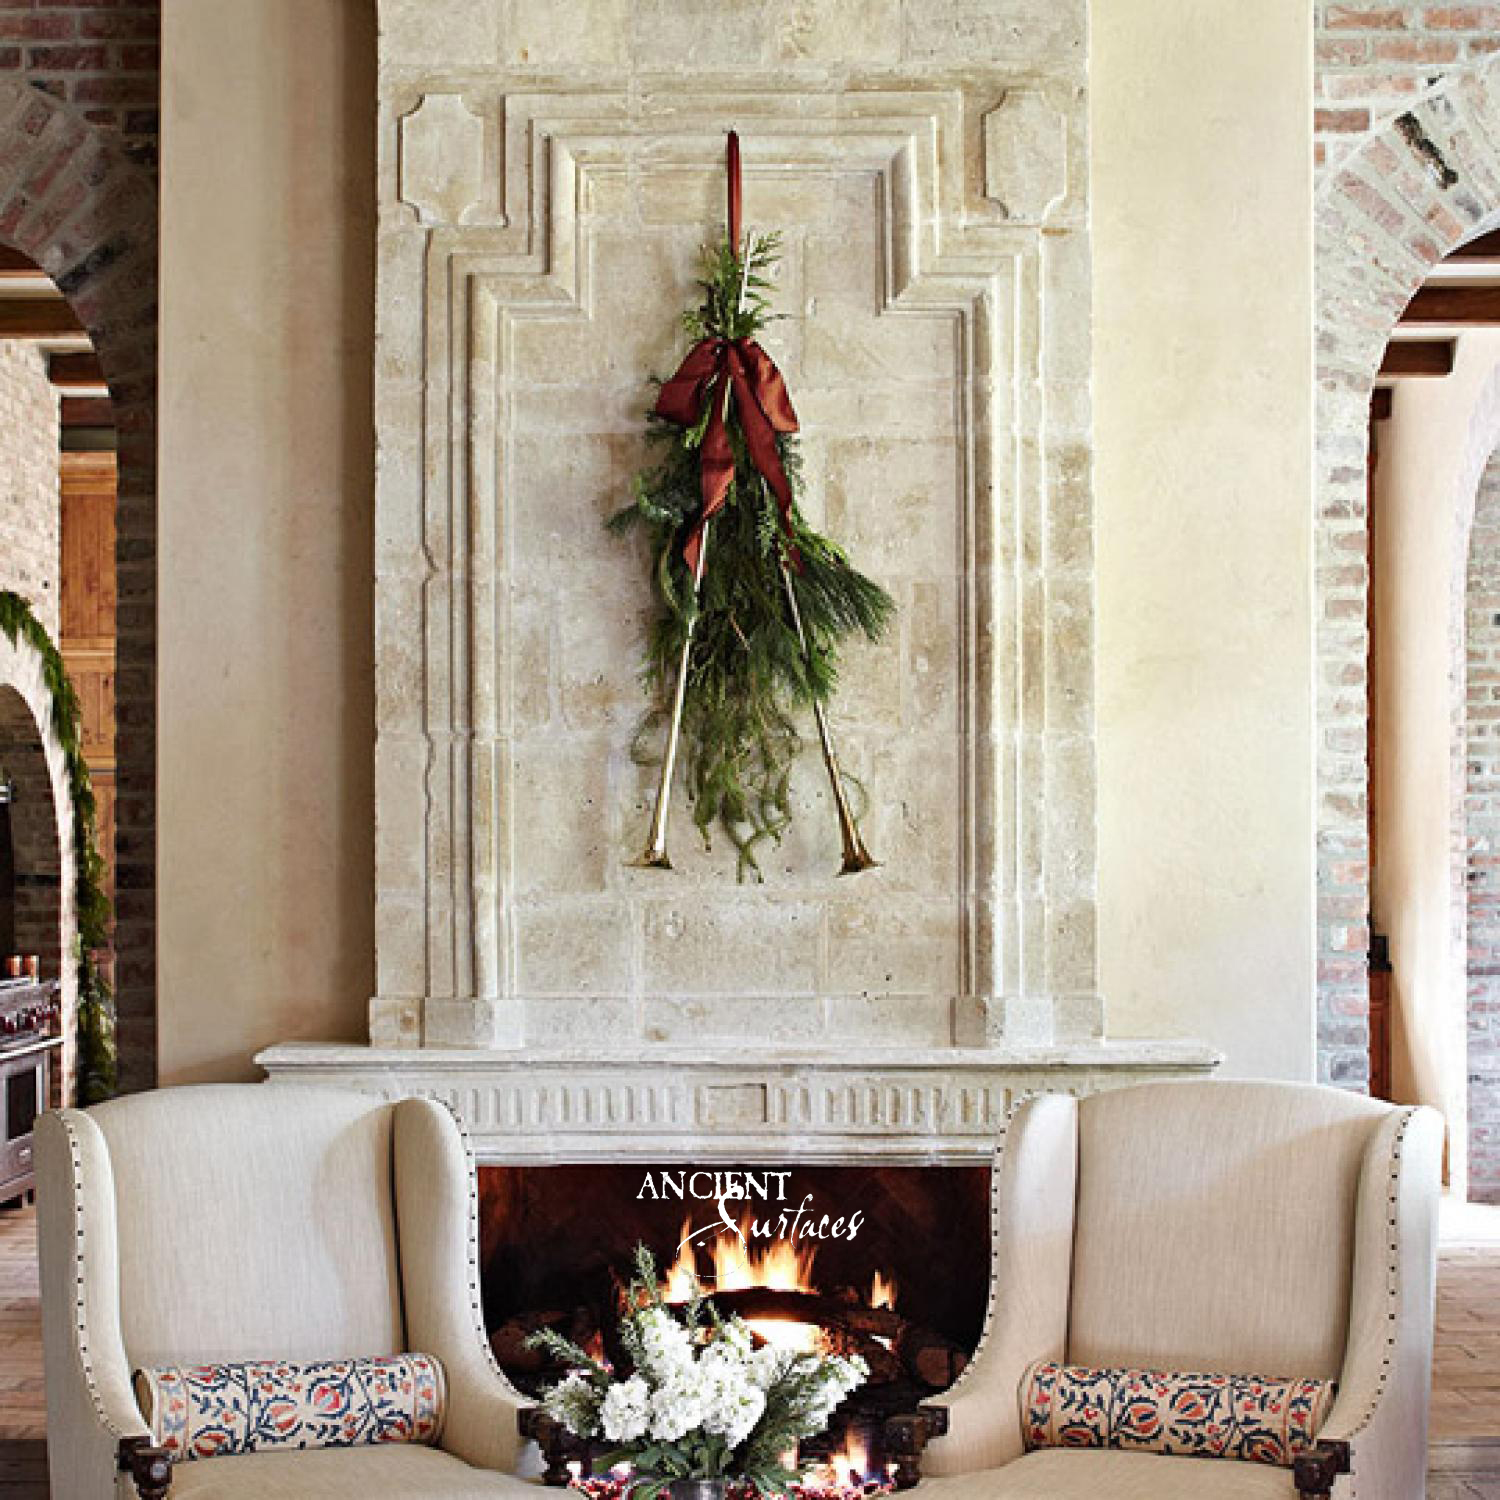 stone fireplace | Antique Fireplaces by Ancient Surfaces